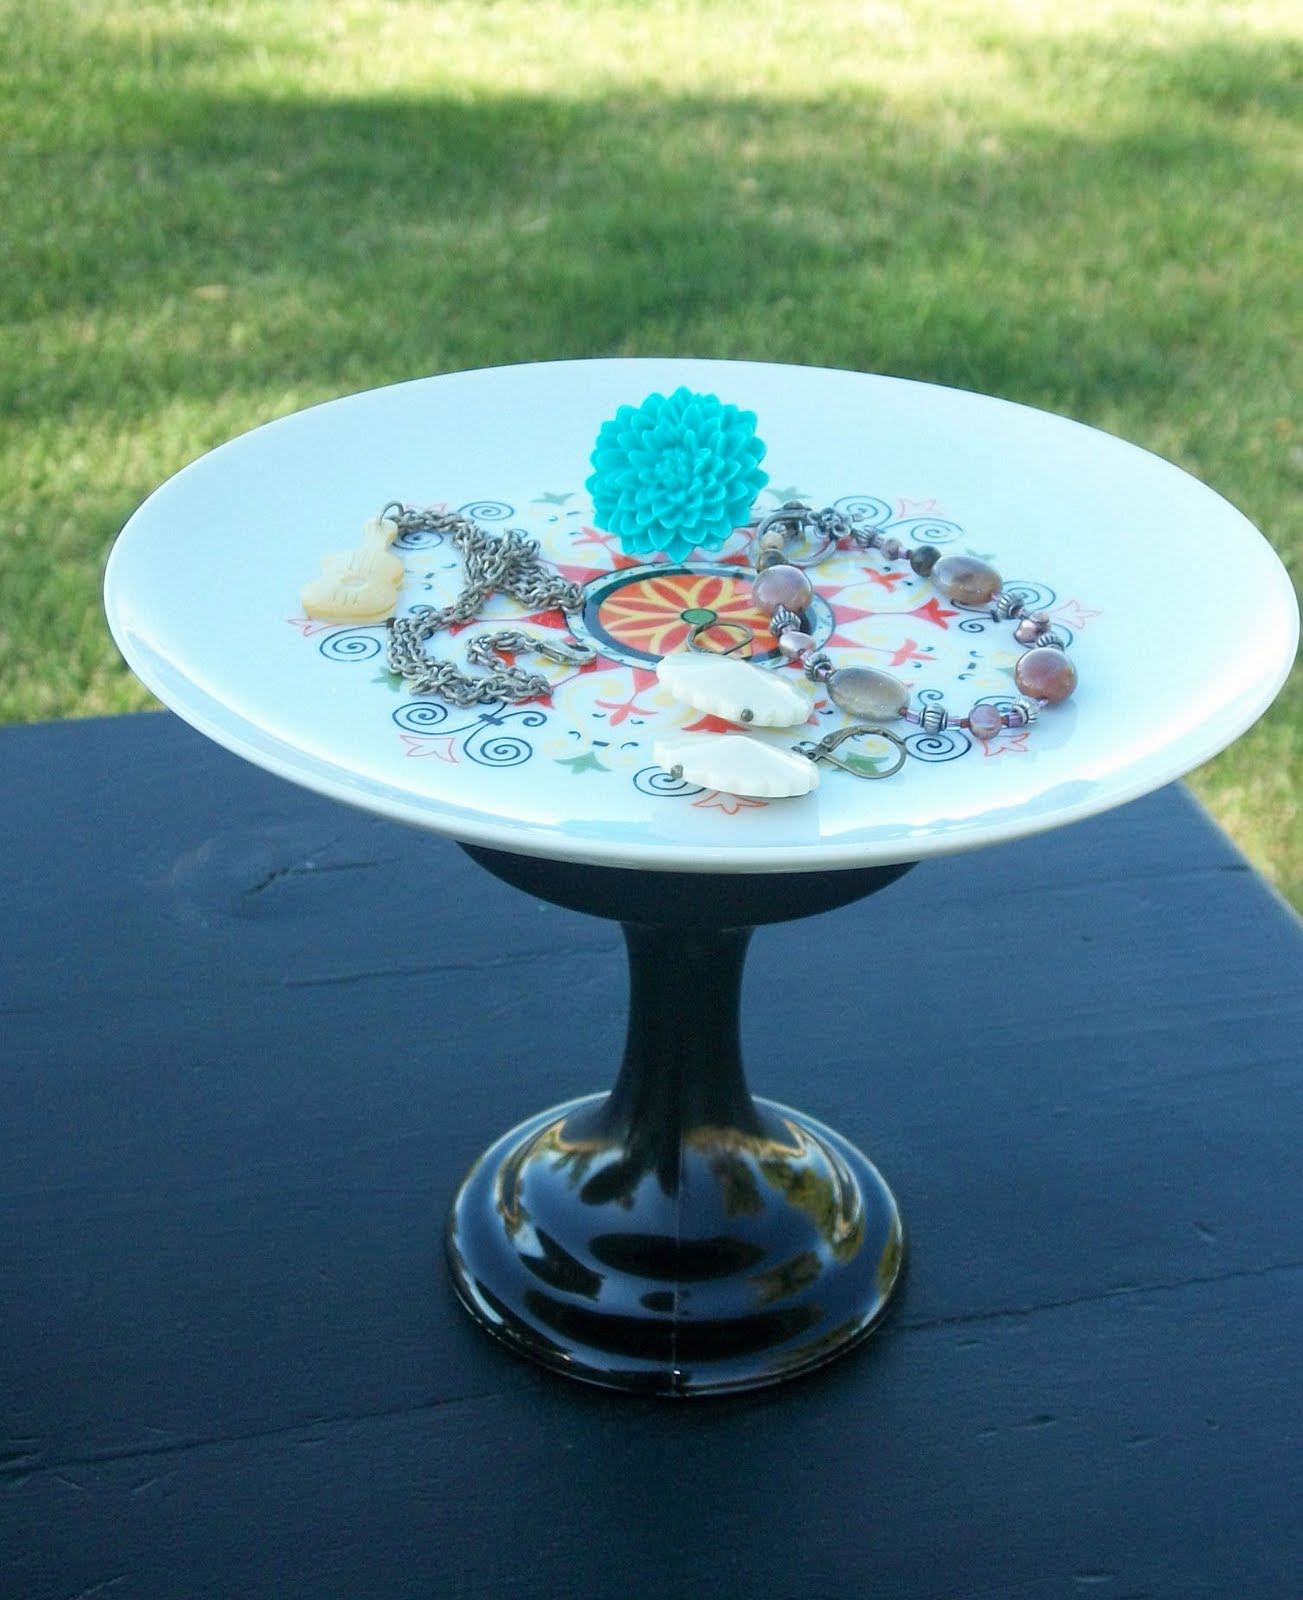 unique cake stands dycacrlic 3 tiers party cupcake stand